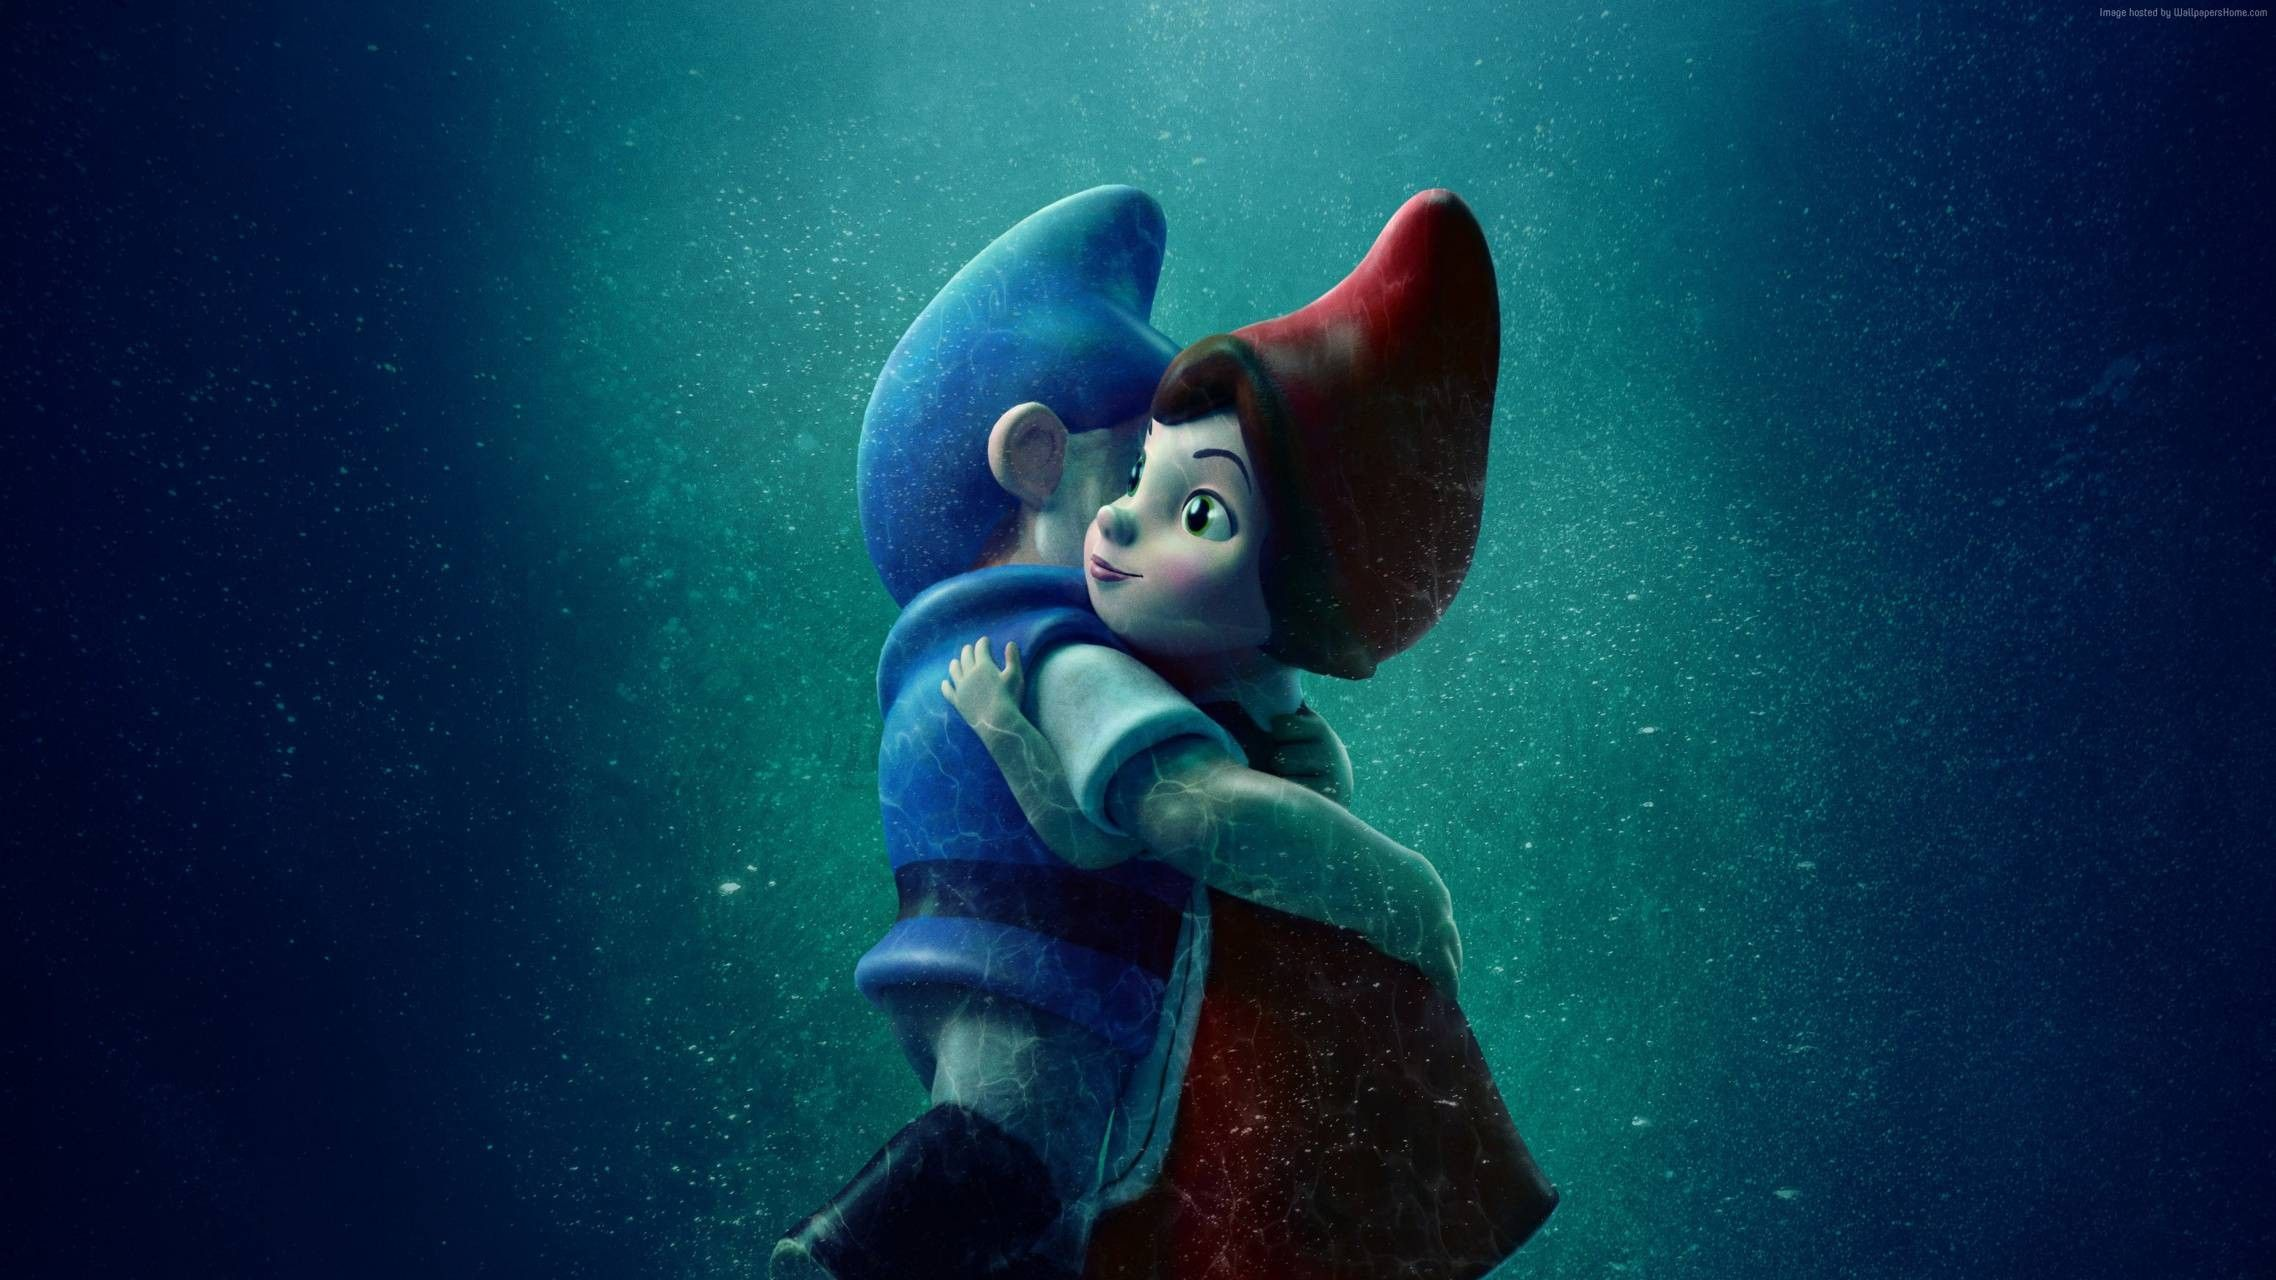 Luxury Gnome Wallpaper Animated Movies For Kids Disney Animated Movies Animated Movies